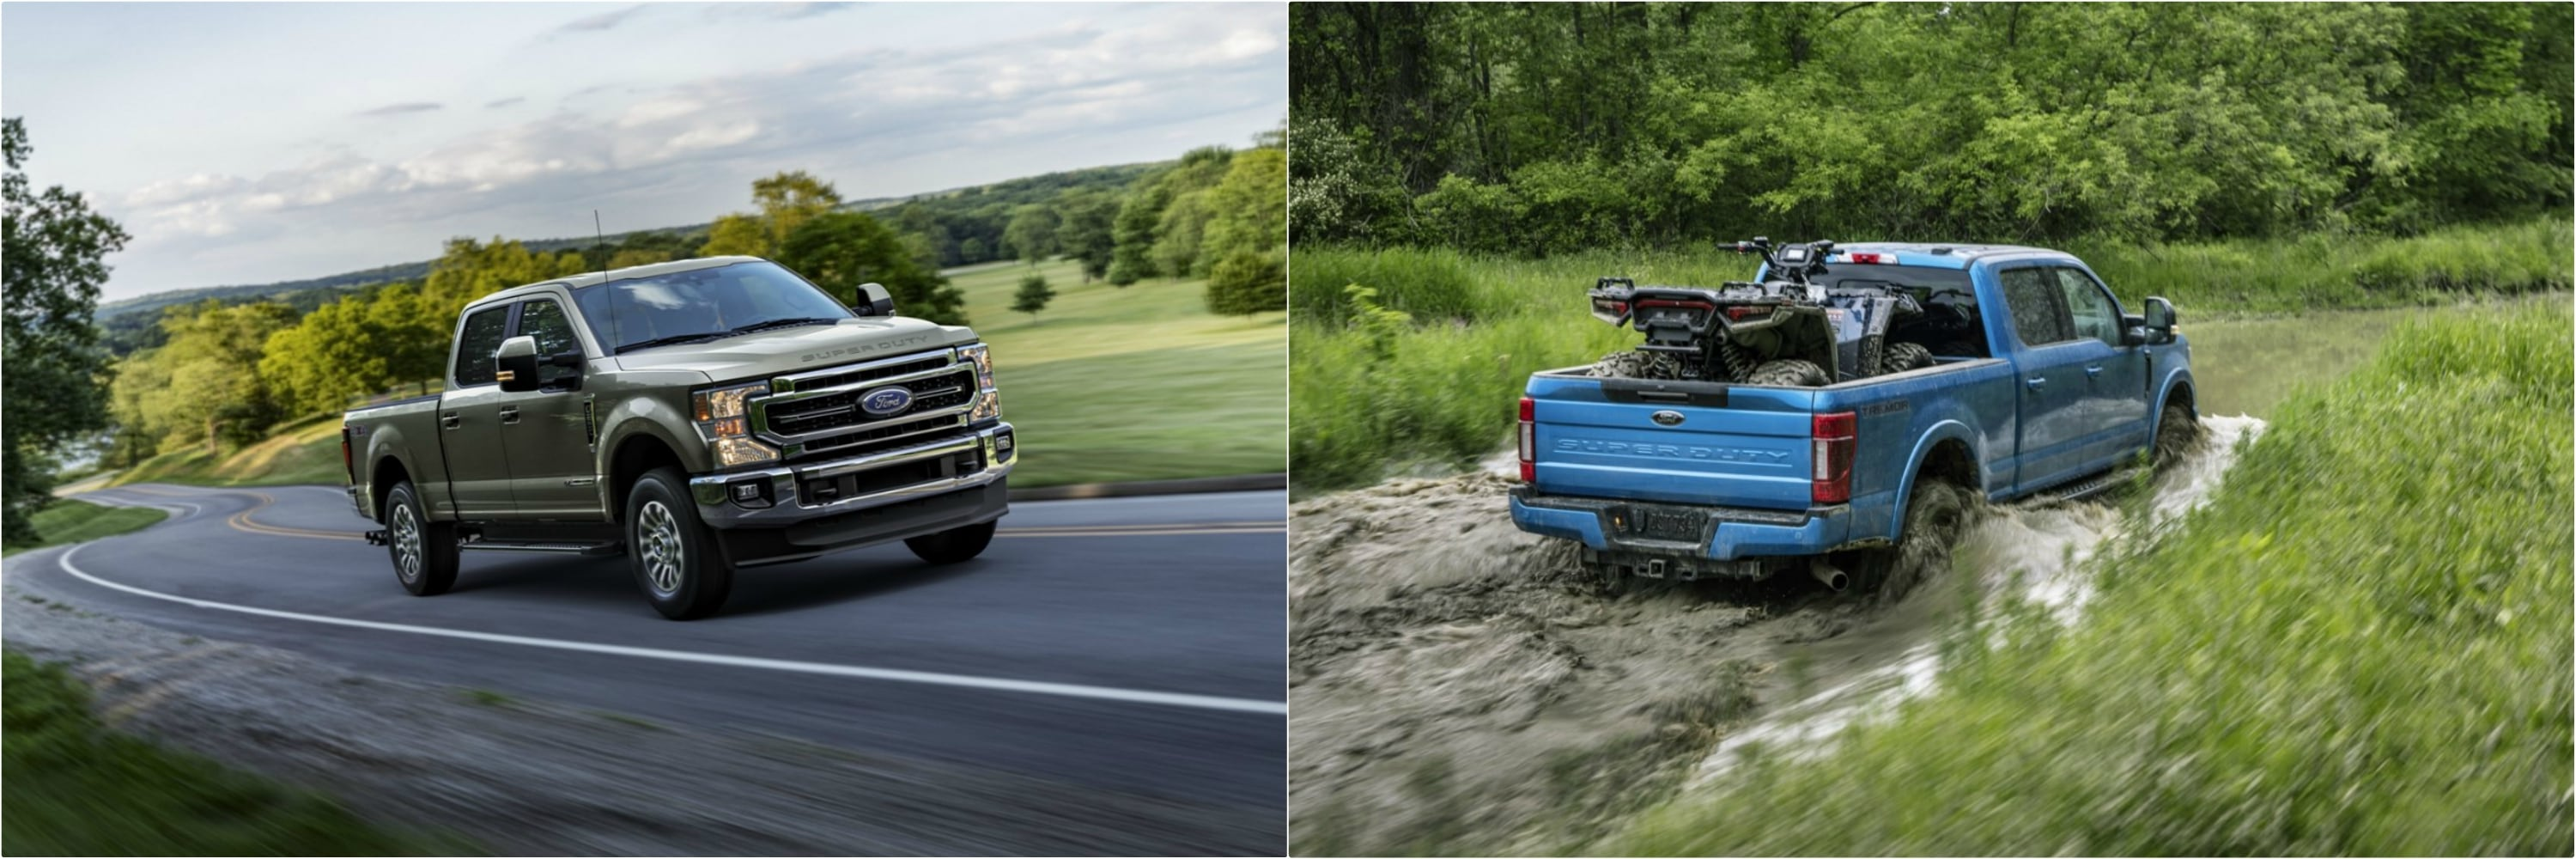 New Ford Super Duty Trucks driving on pavement and through water